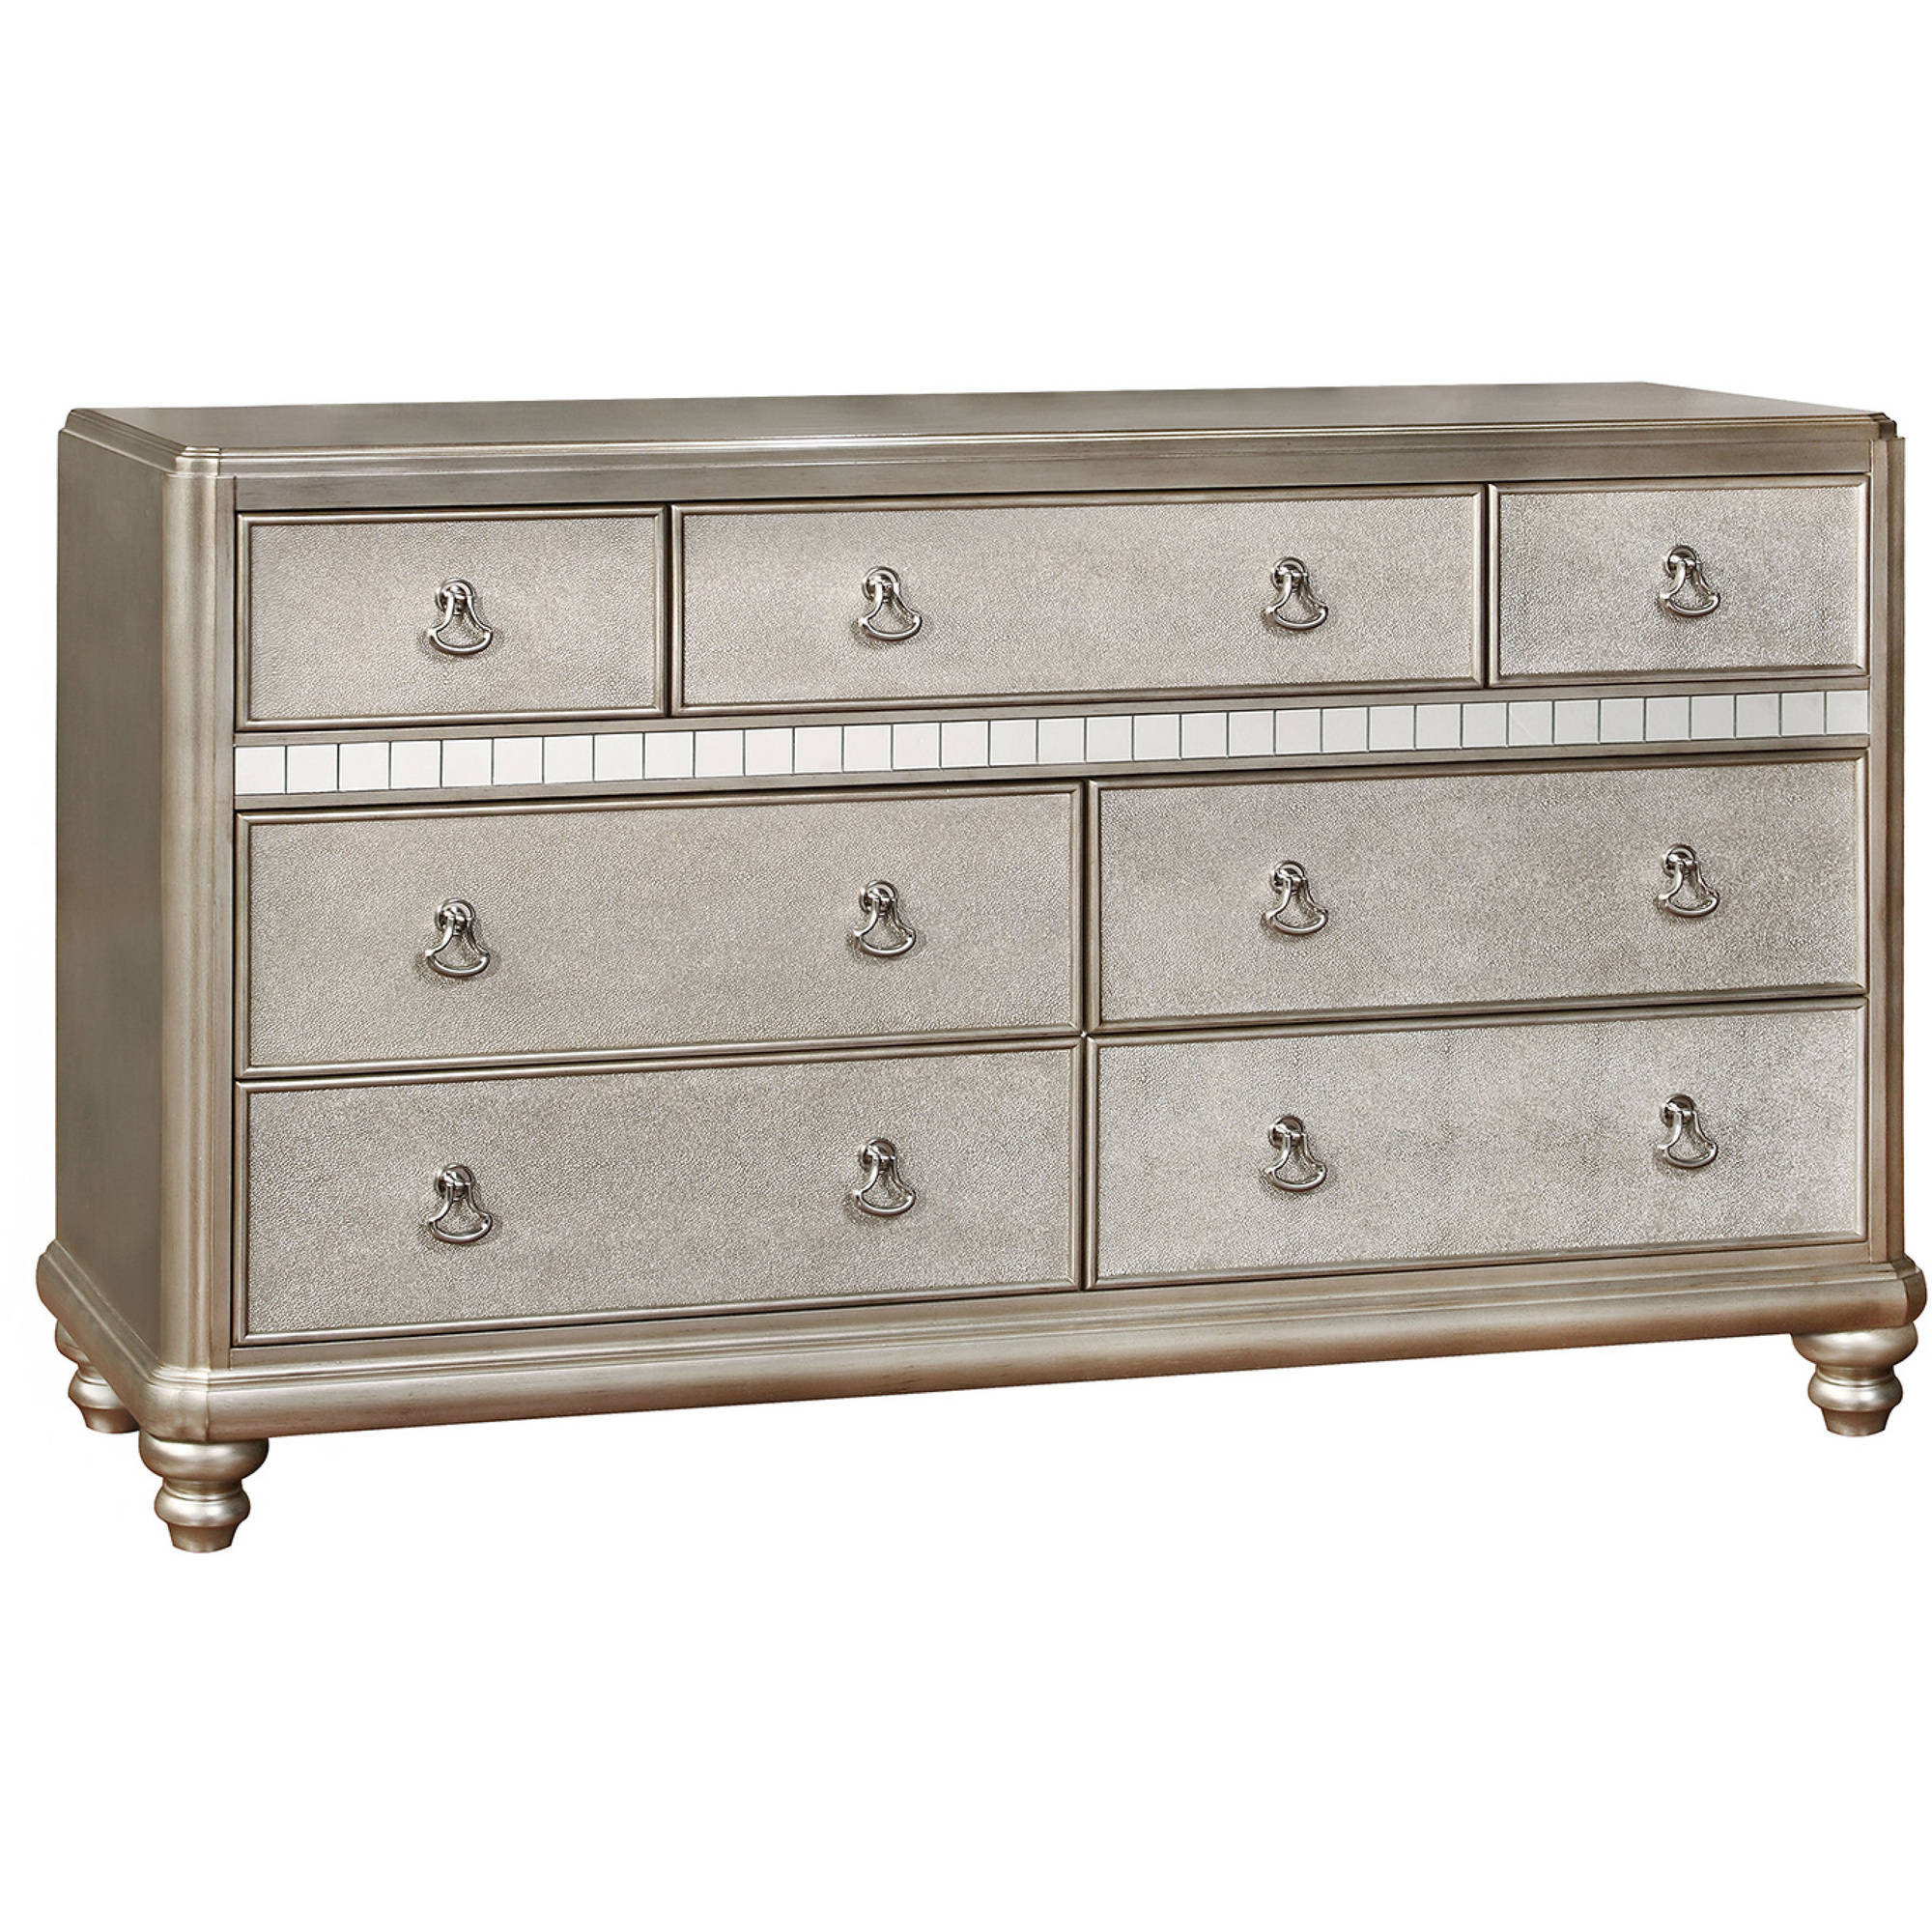 Coaster Company Bling Game Dresser, Platinum